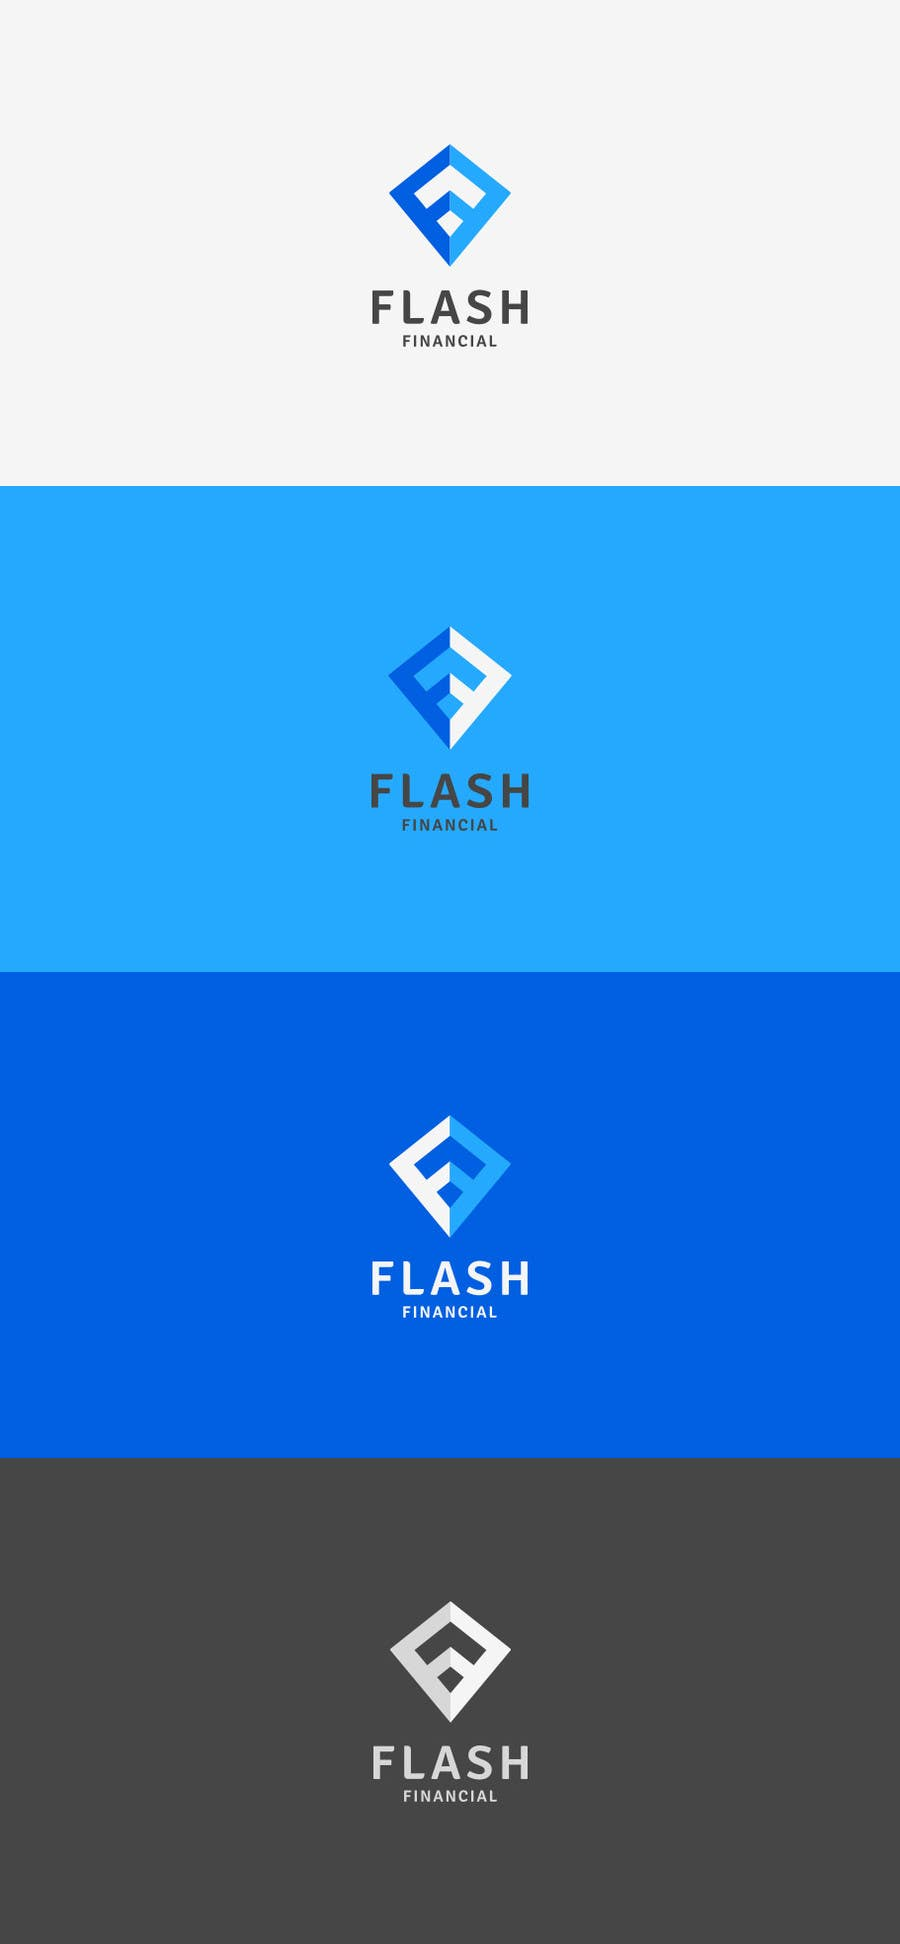 #89 for Logo Design for Flash Finance by RedHawk86